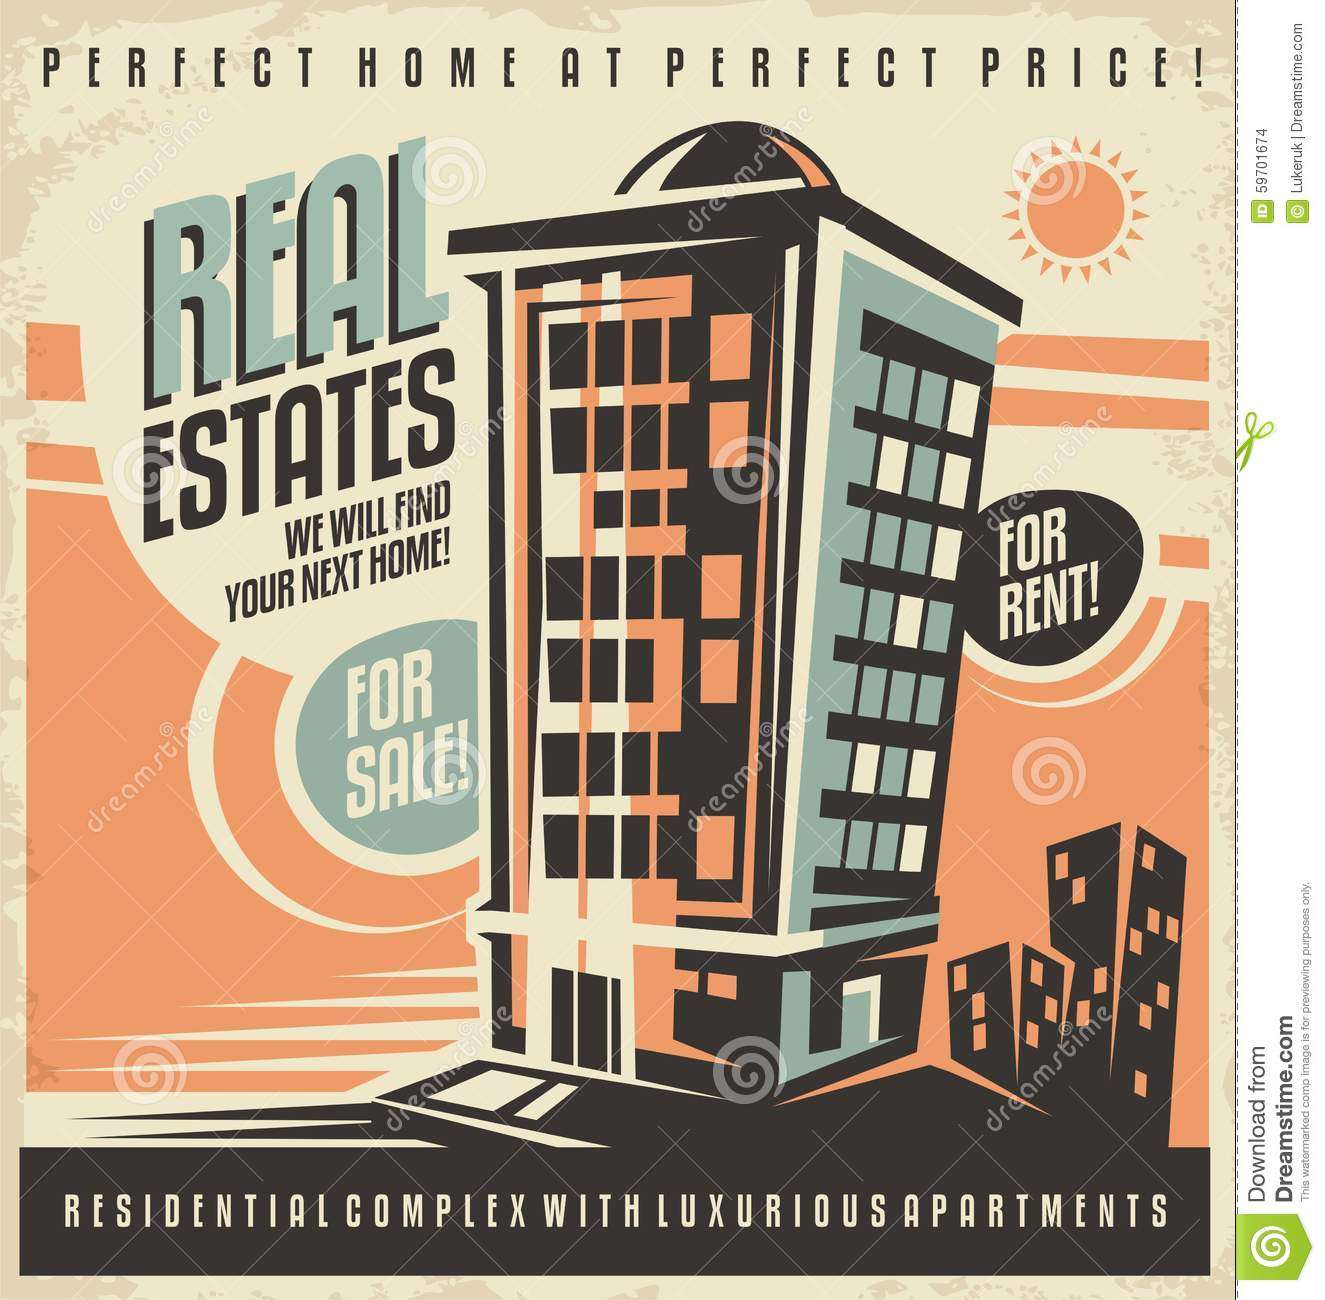 Ads For Apartments For Rent: Real Estates Vintage Ad Design Concept Stock Vector